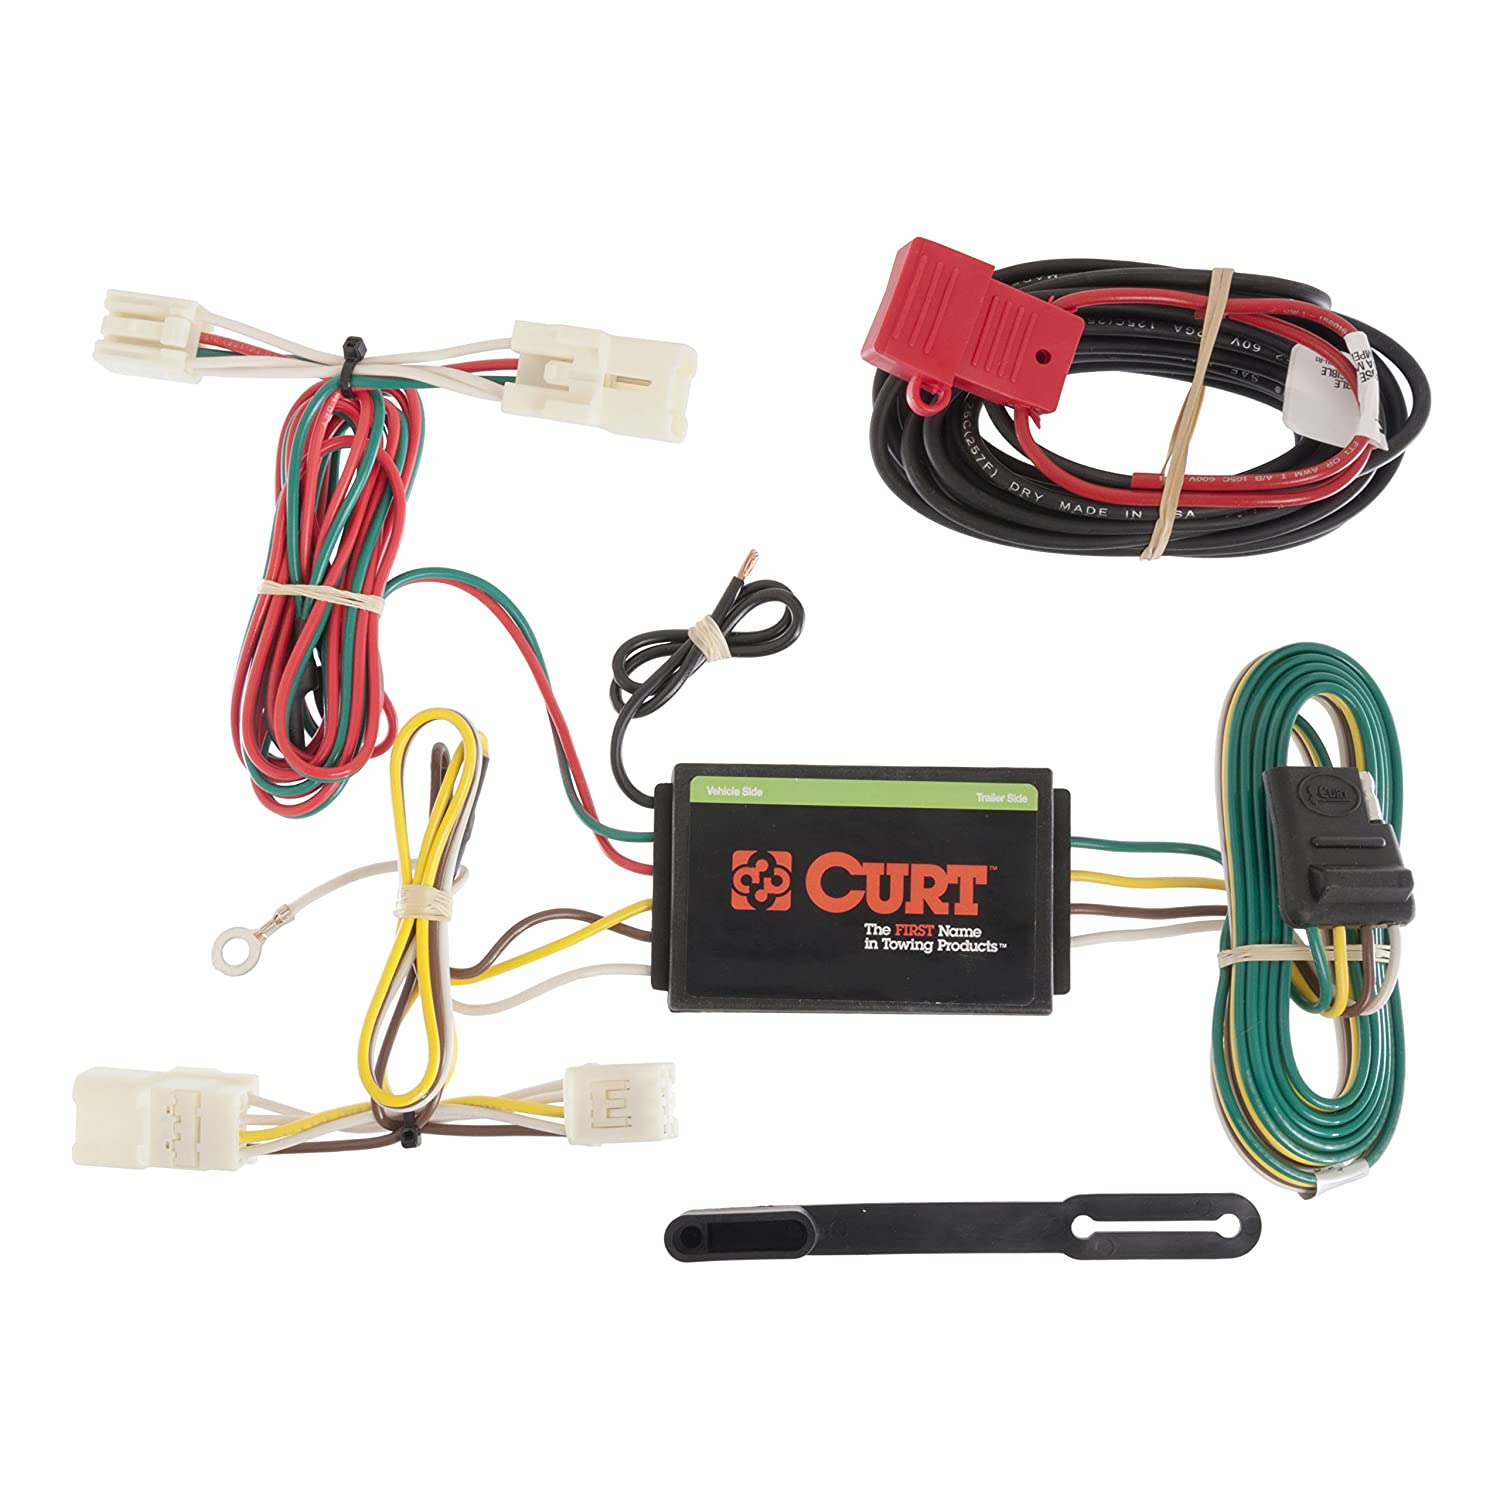 817l7jcQOtL._SL1500_ amazon com curt 56165 custom wiring harness automotive automotive wiring harness at mifinder.co